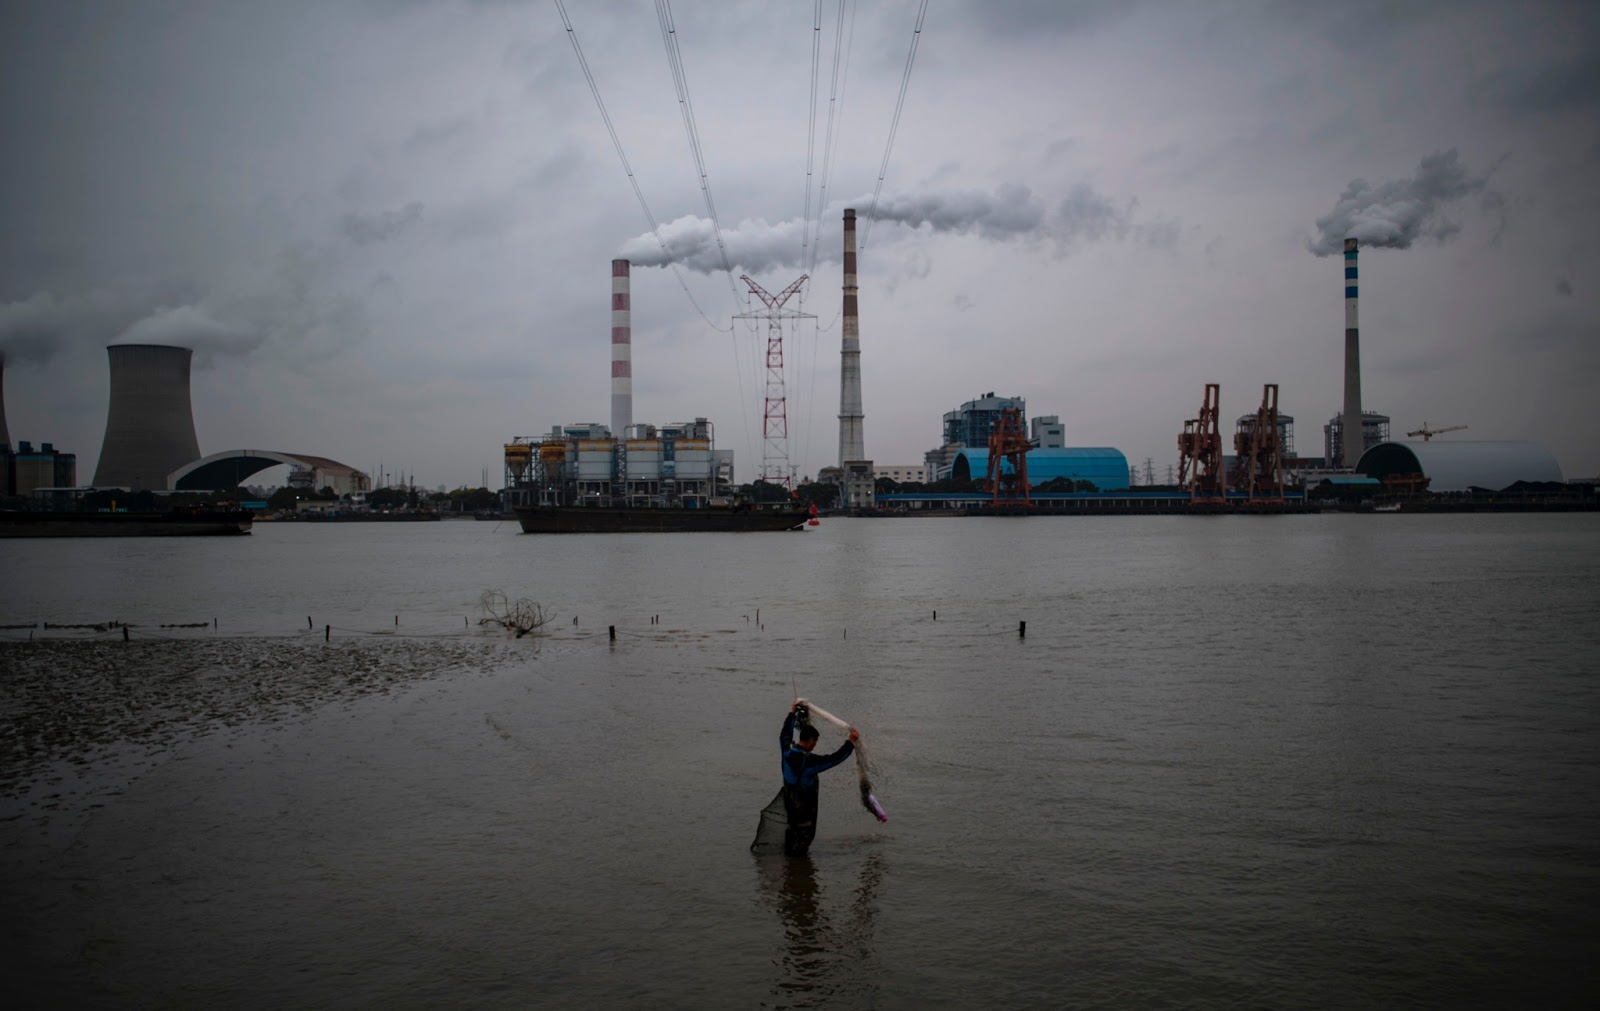 coal-power-plant-shanghai-china-GettyImages-1228668962